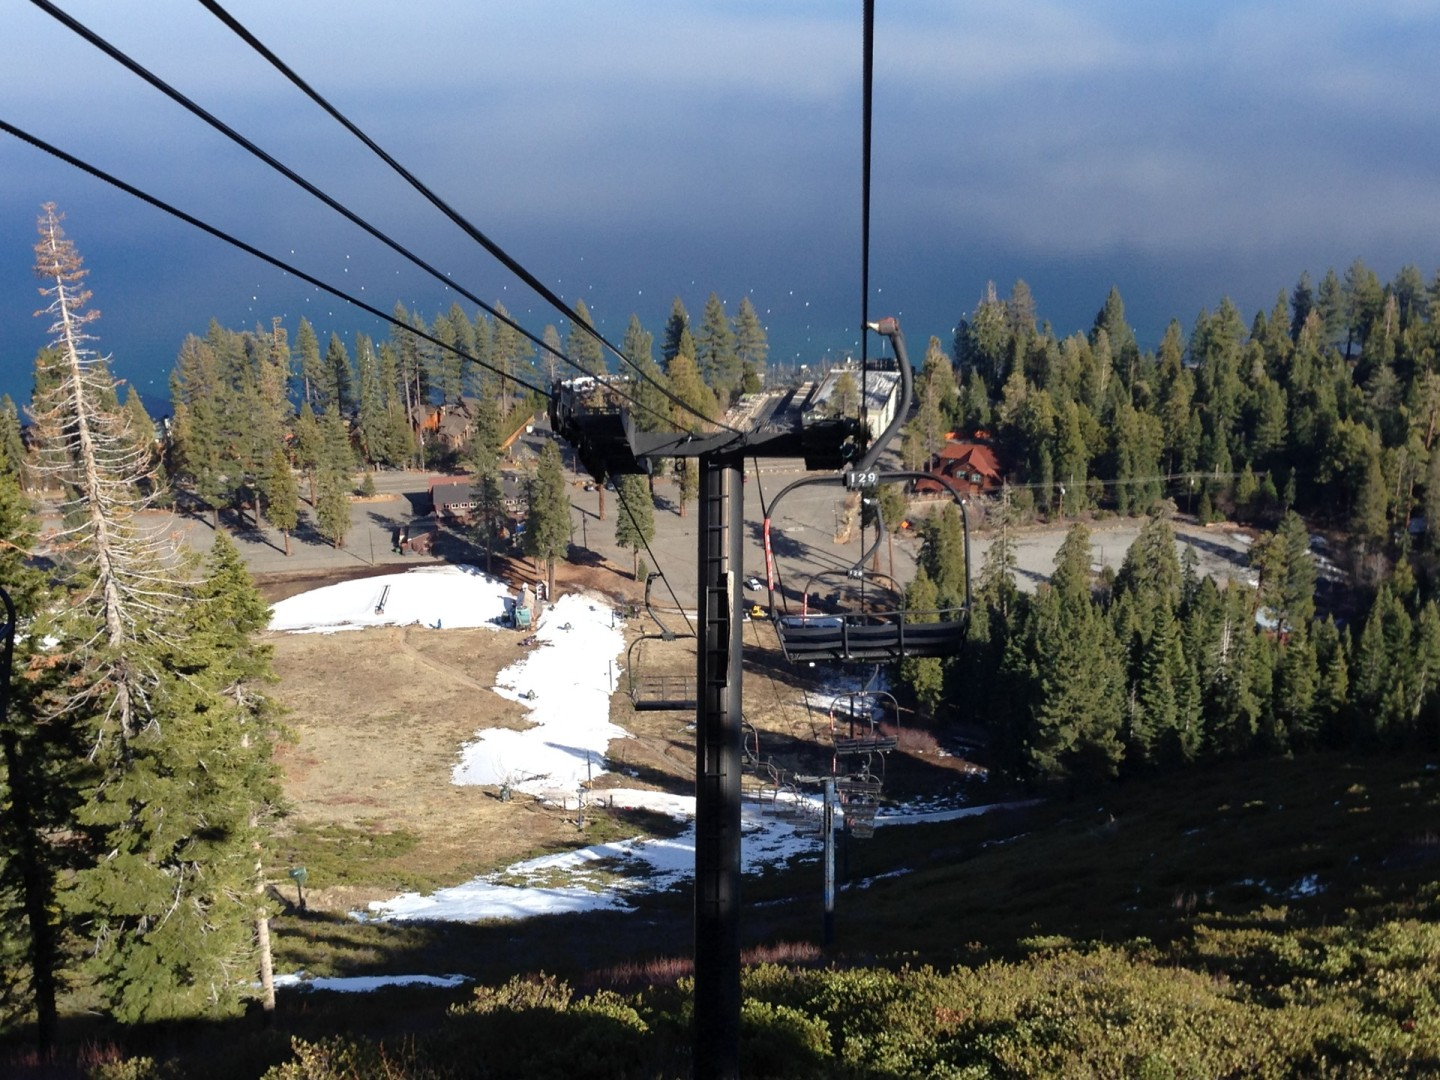 Businesses are suffering after Lake Tahoe's fourth consecutive season of drought.